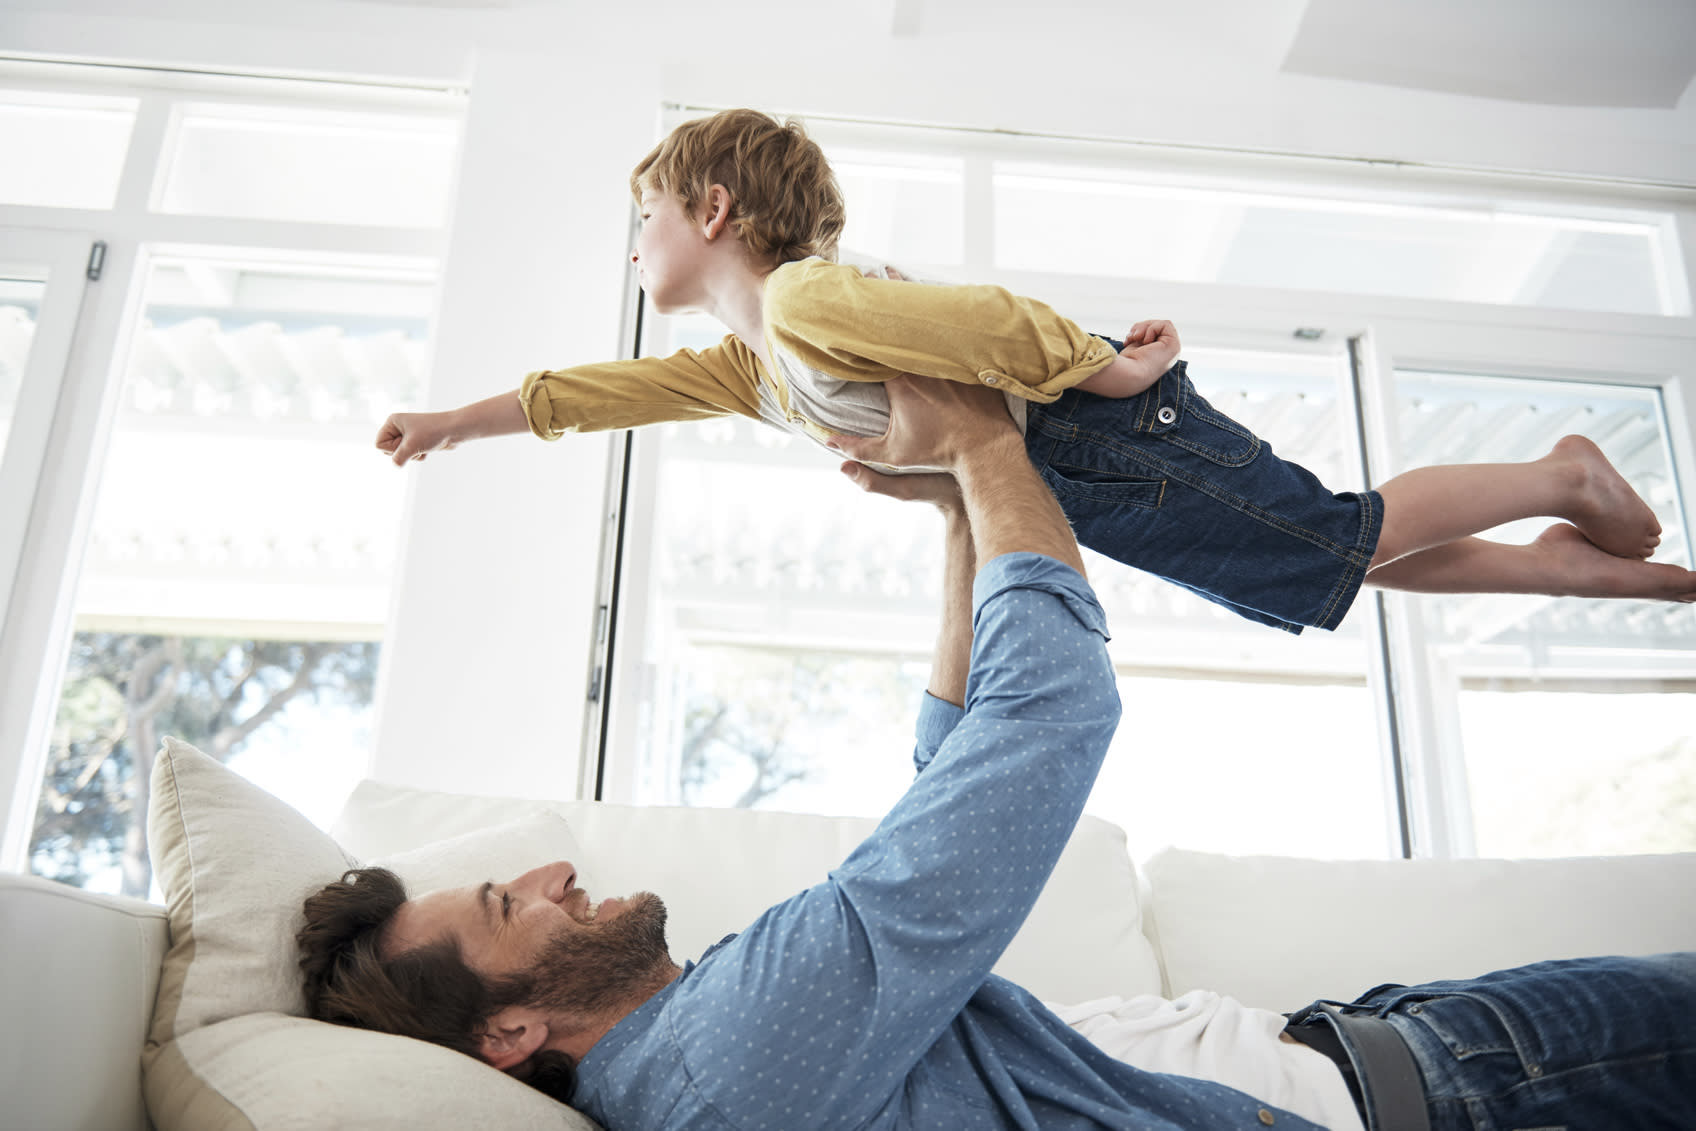 role of fathers in the lives of children The goal of this paper is to examine the role of fathers in the lives of their children in the literature and to identify a gap in the literature in order to come up with a research question for a future study.